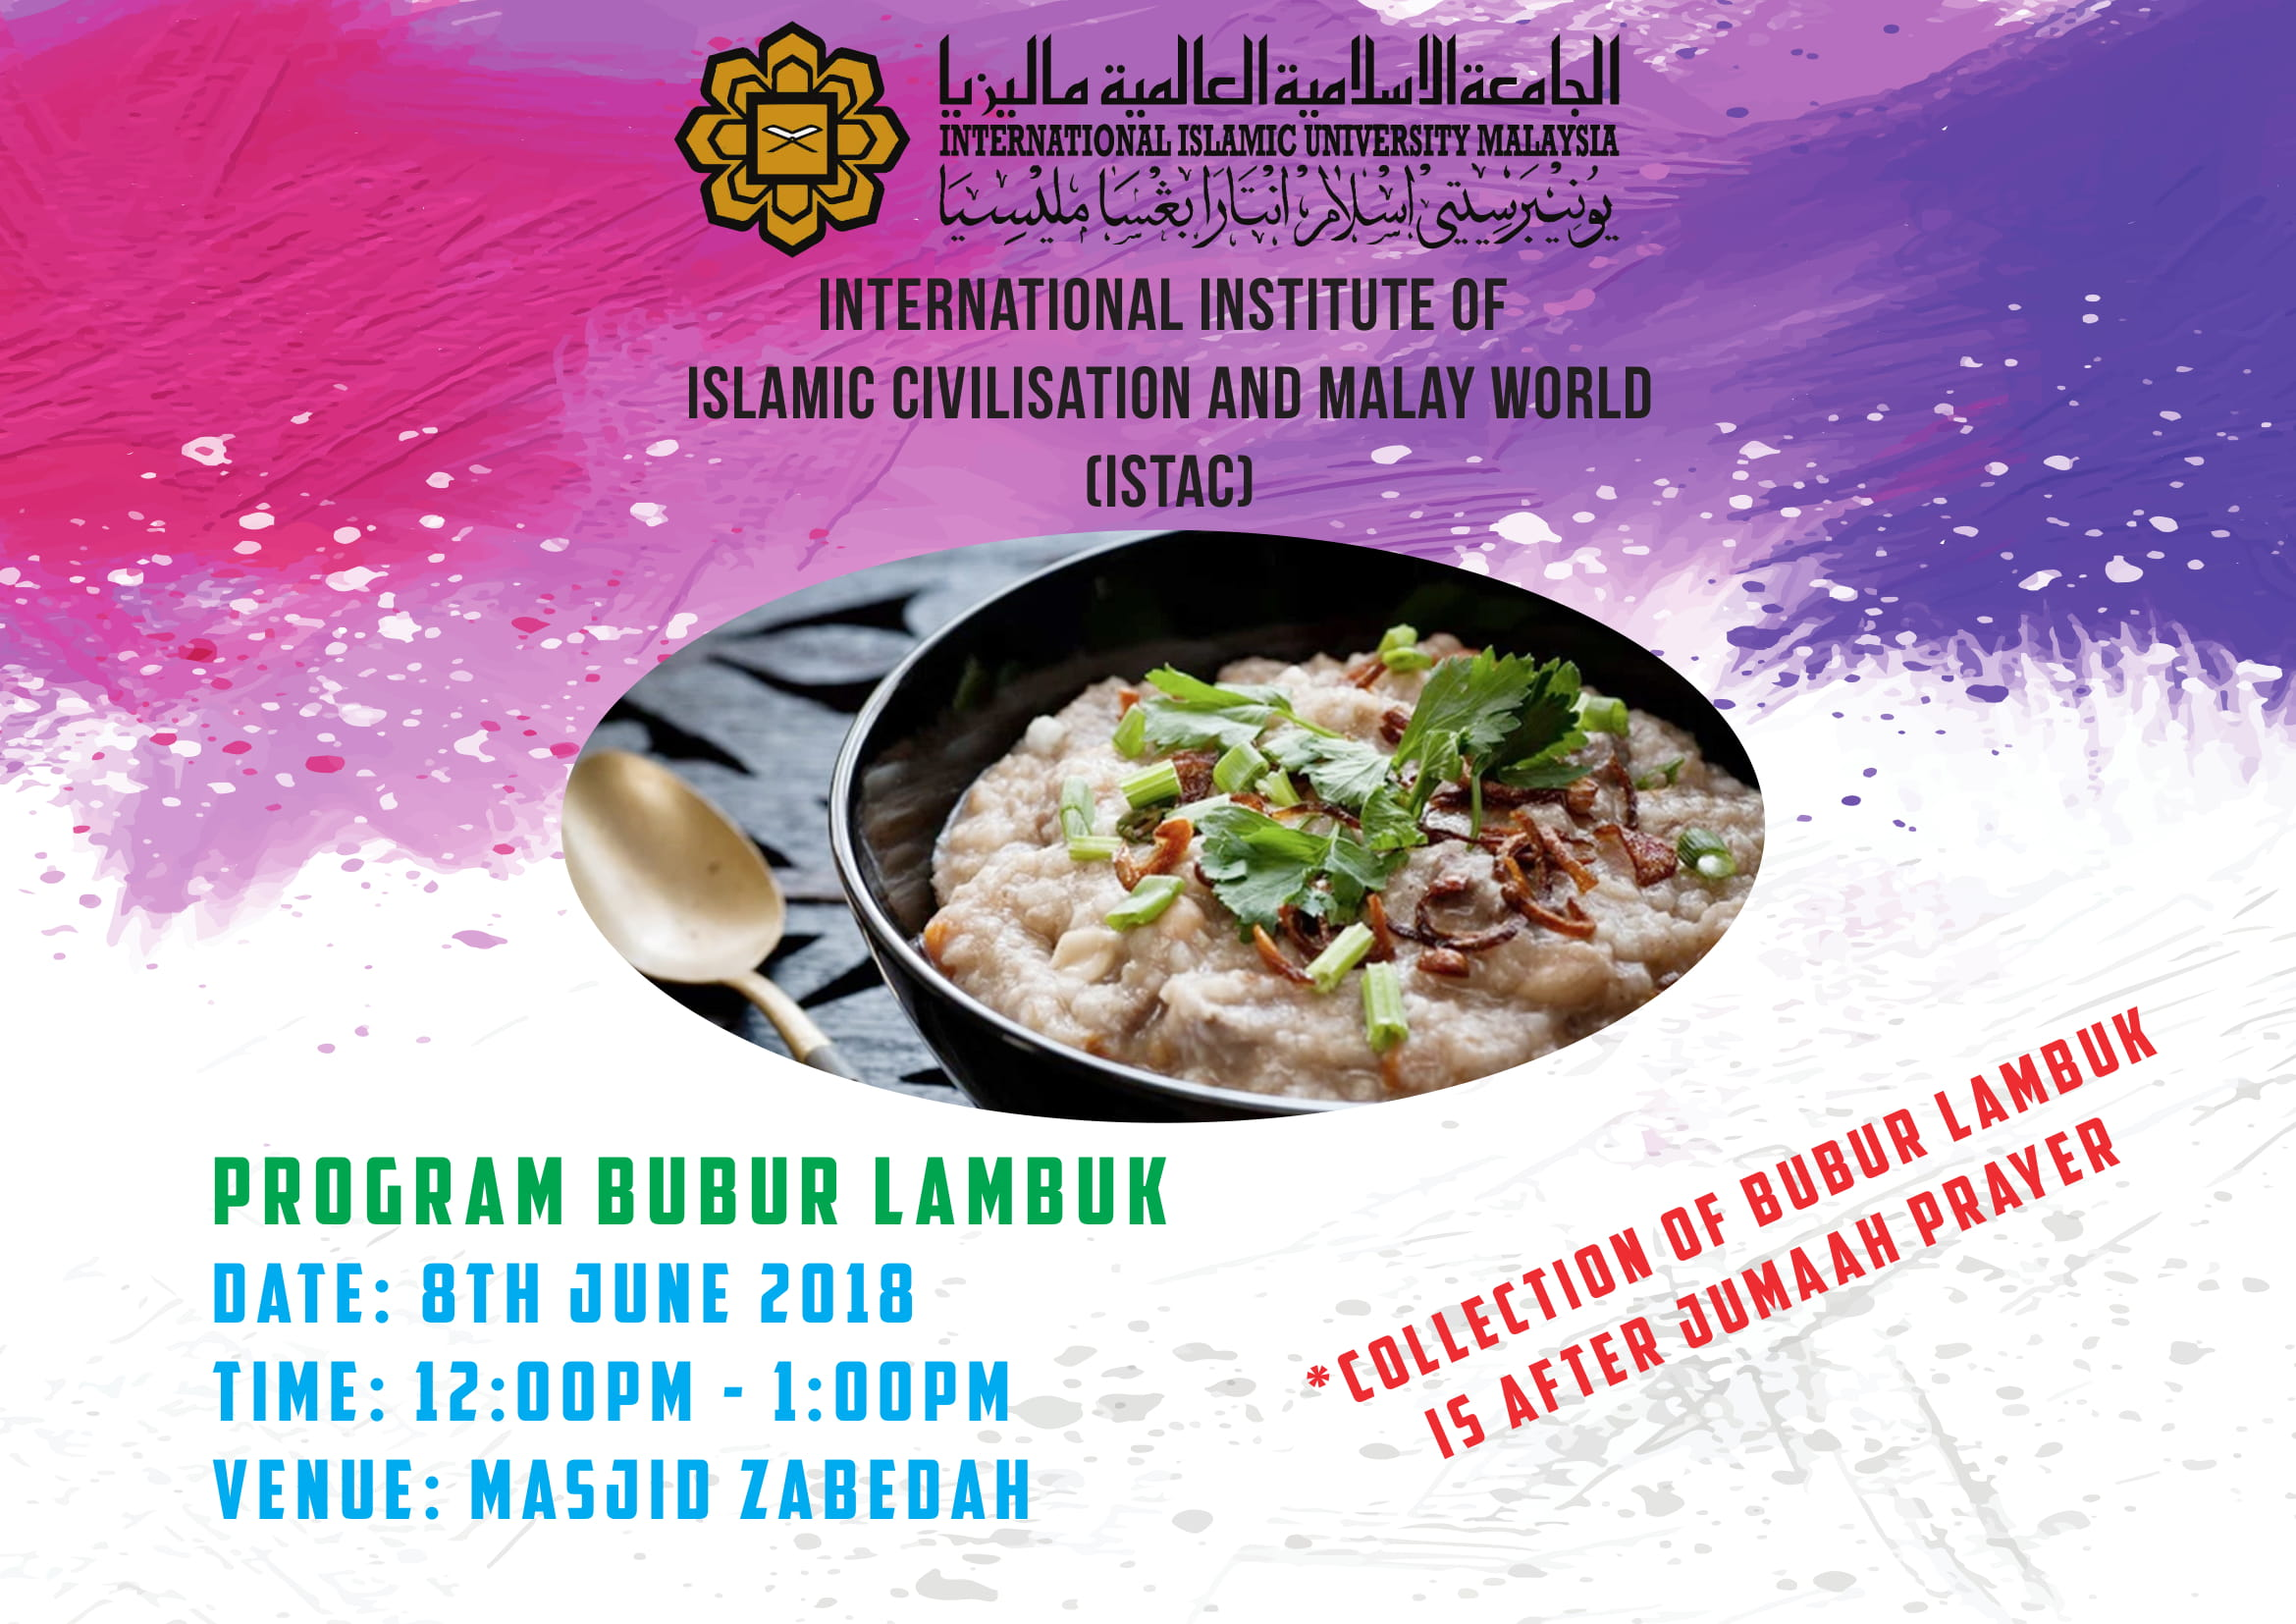 PROGRAM BUBUR LAMBUK